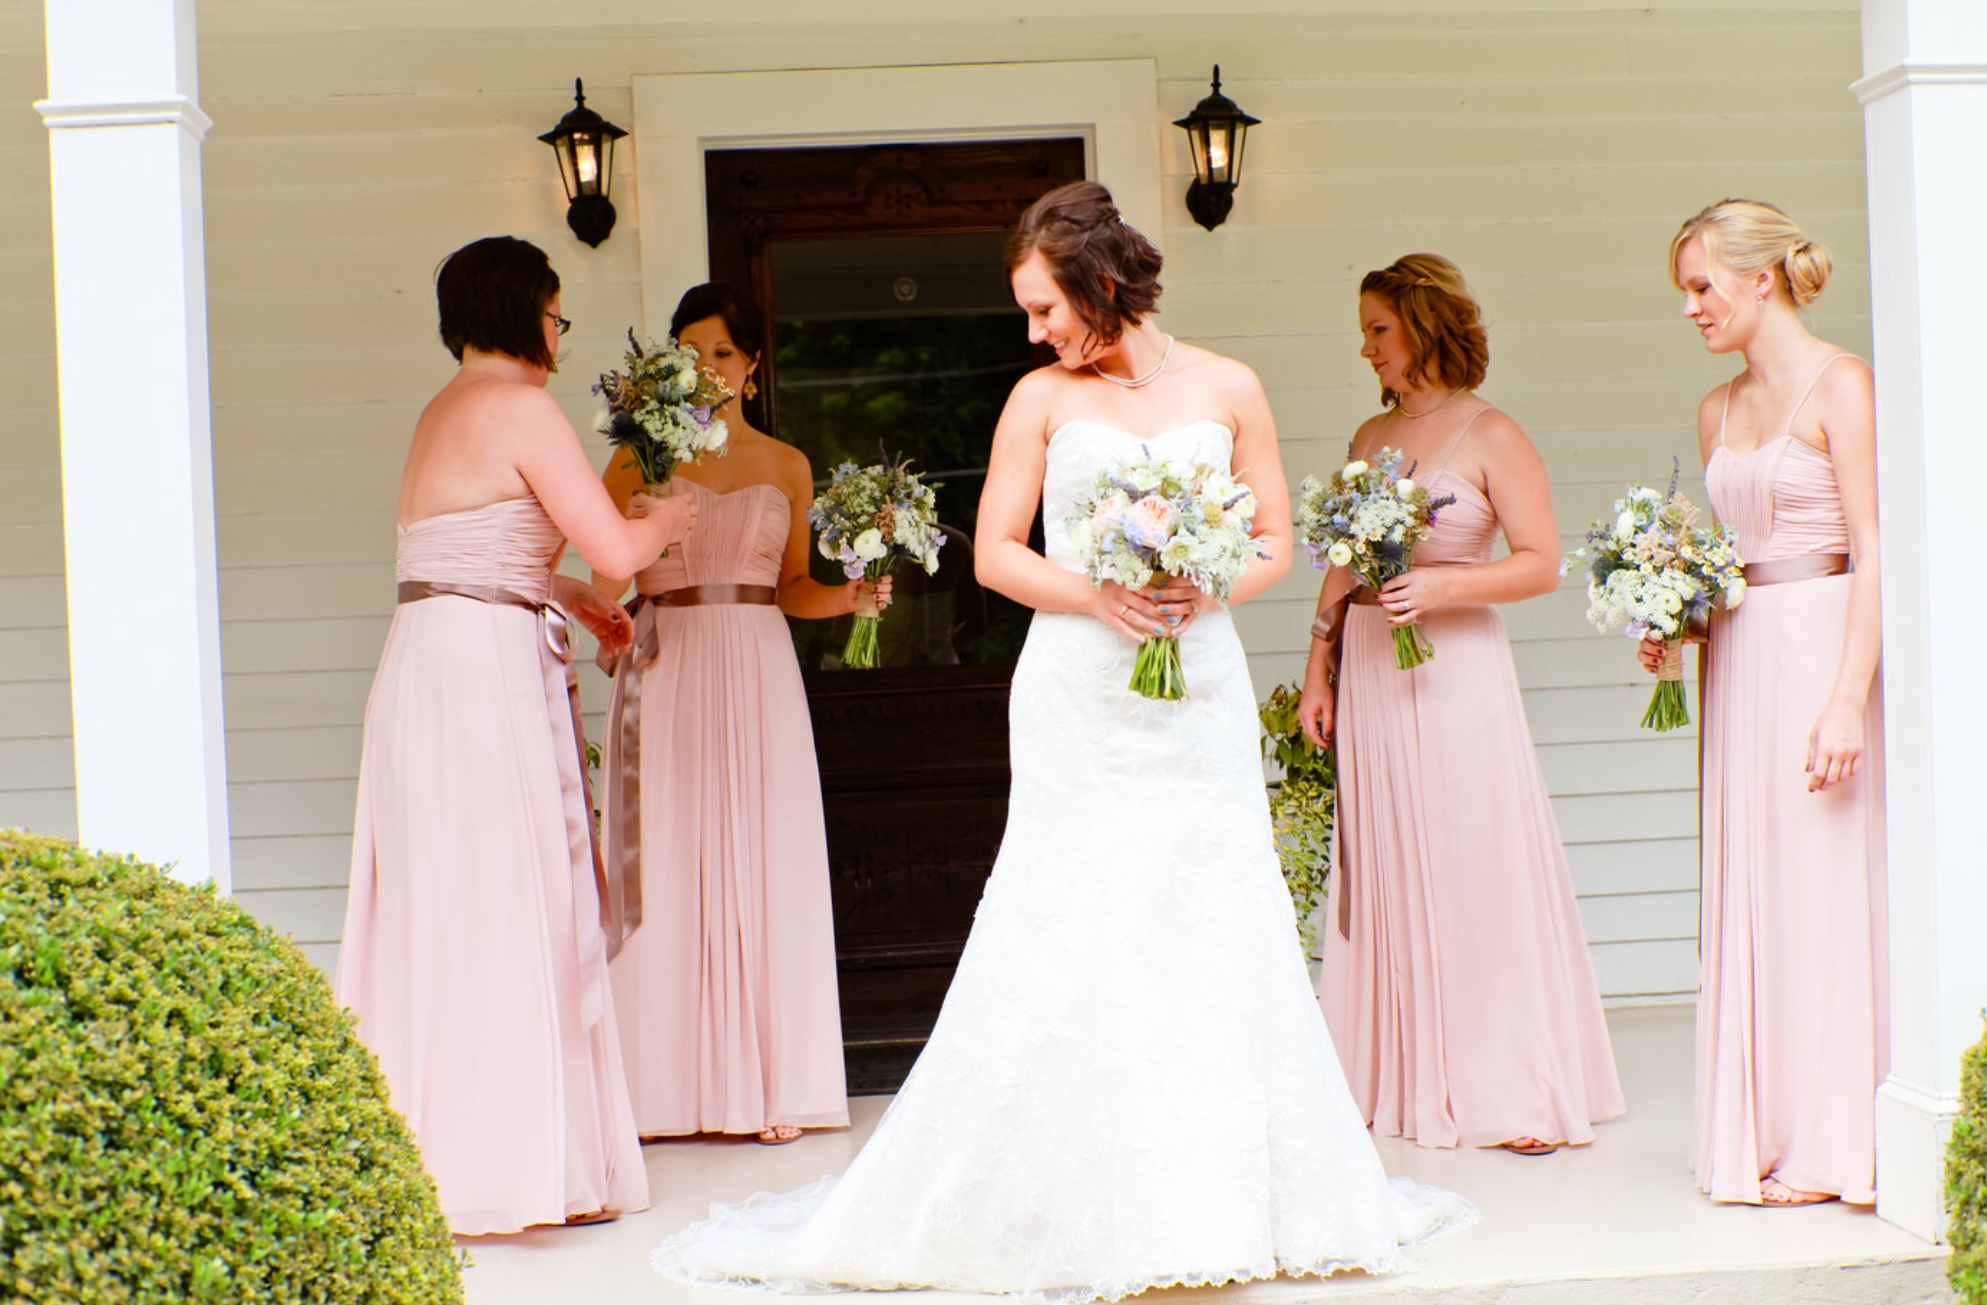 Blush Pink Bridesmaids Dresses - Bridal Bouquet Ideas - Oconee Events